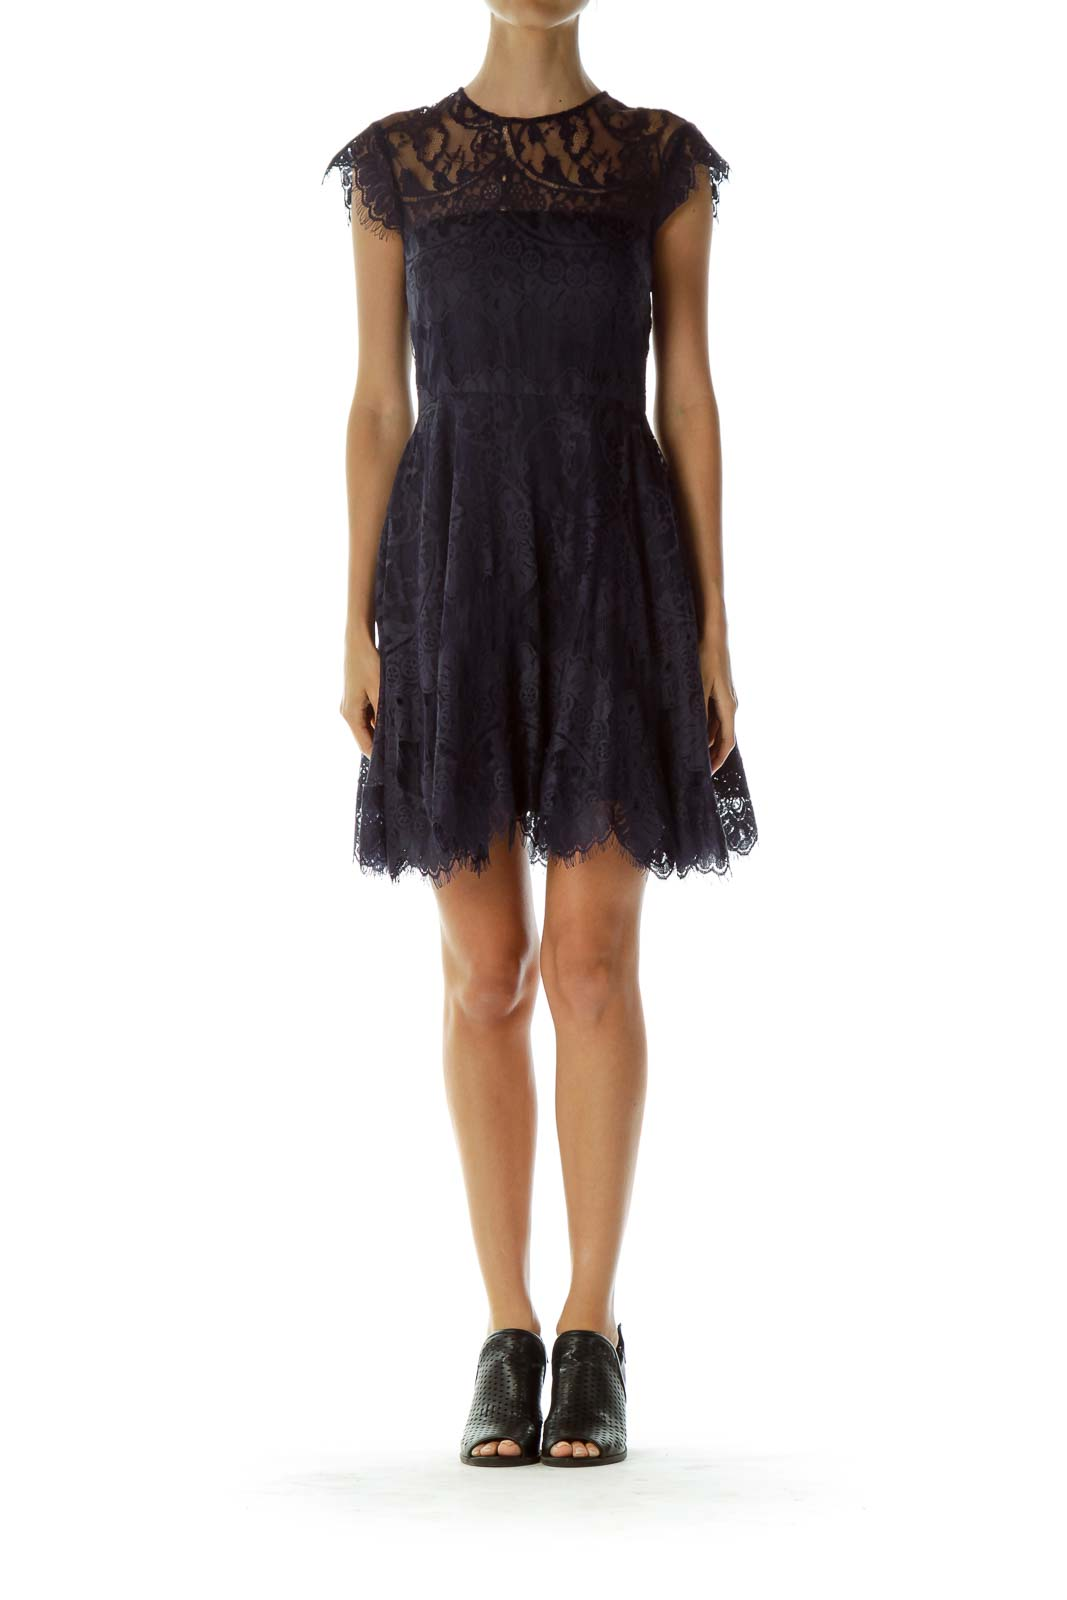 Navy Lace Open Neck Cocktail Dress